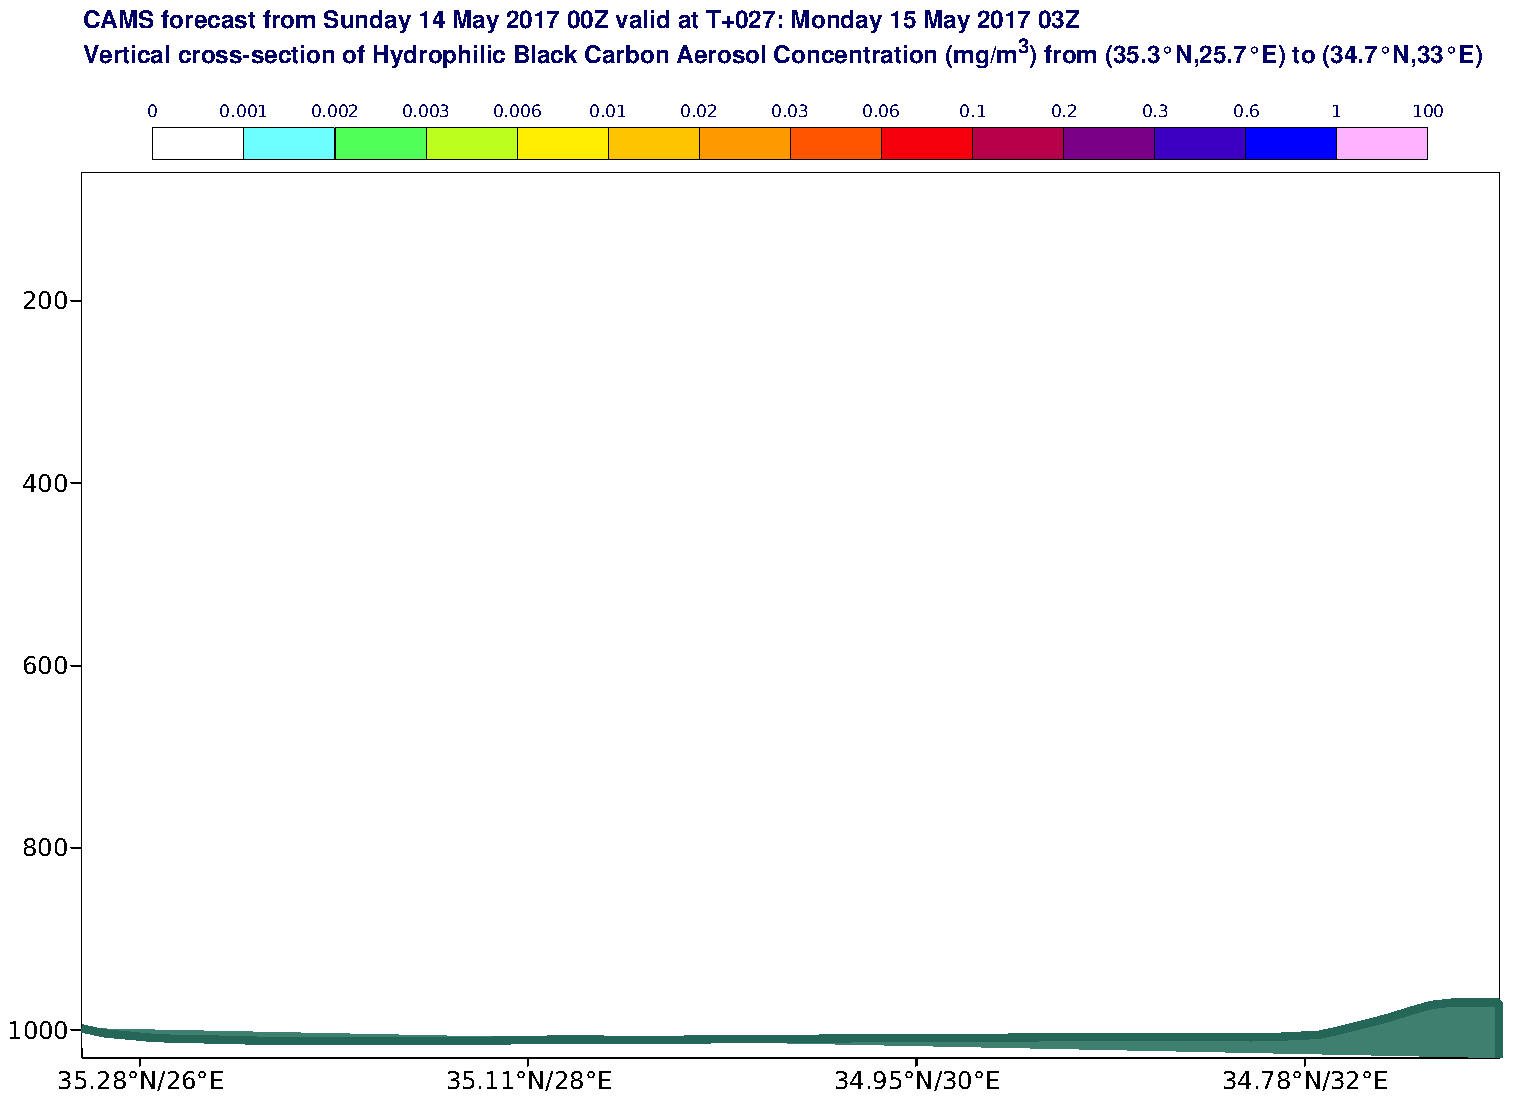 Vertical cross-section of Hydrophilic Black Carbon Aerosol Concentration (mg/m3) valid at T27 - 2017-05-15 03:00